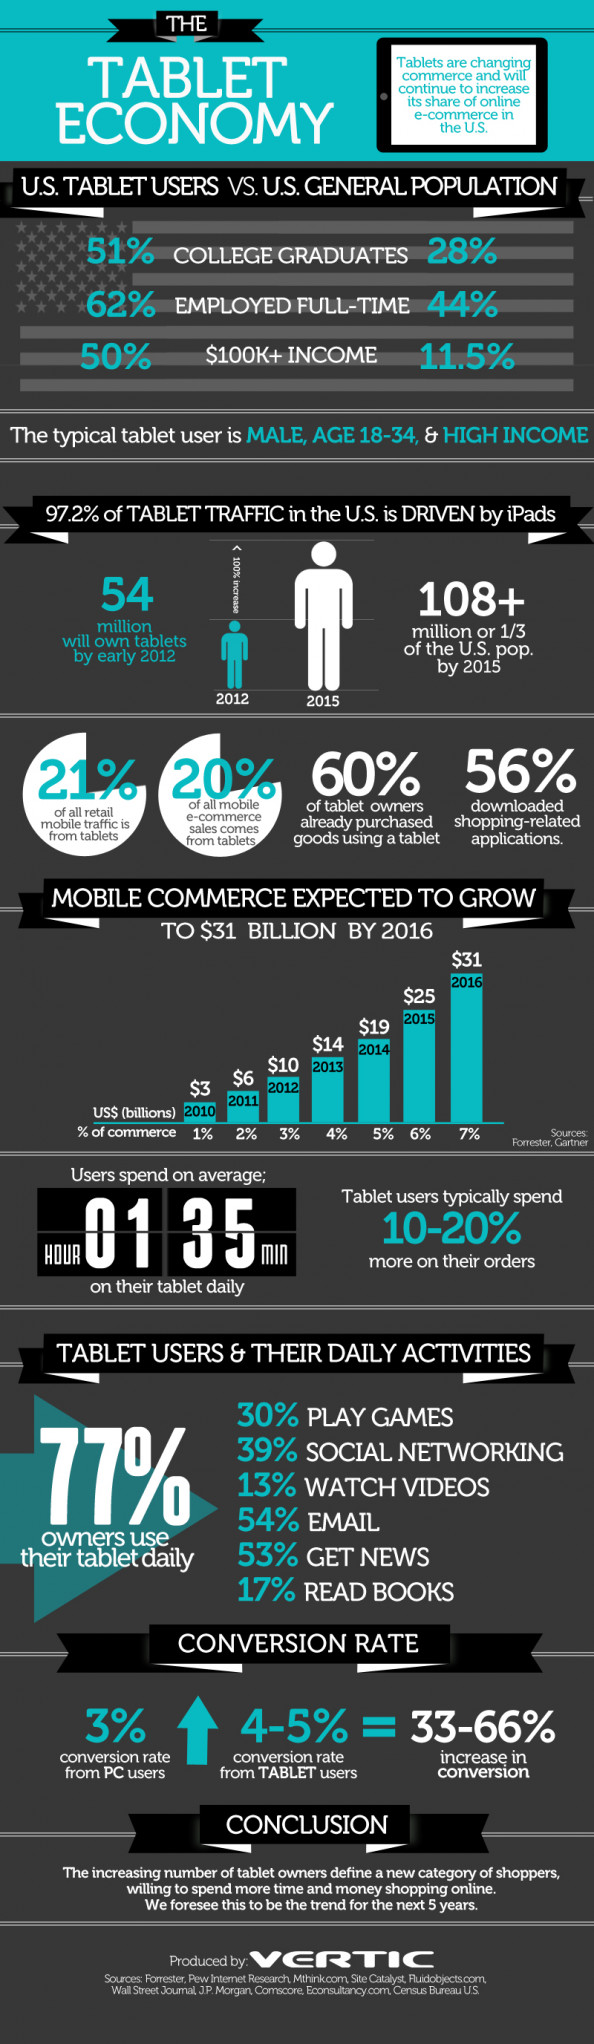 The Tablet Economy Infographic